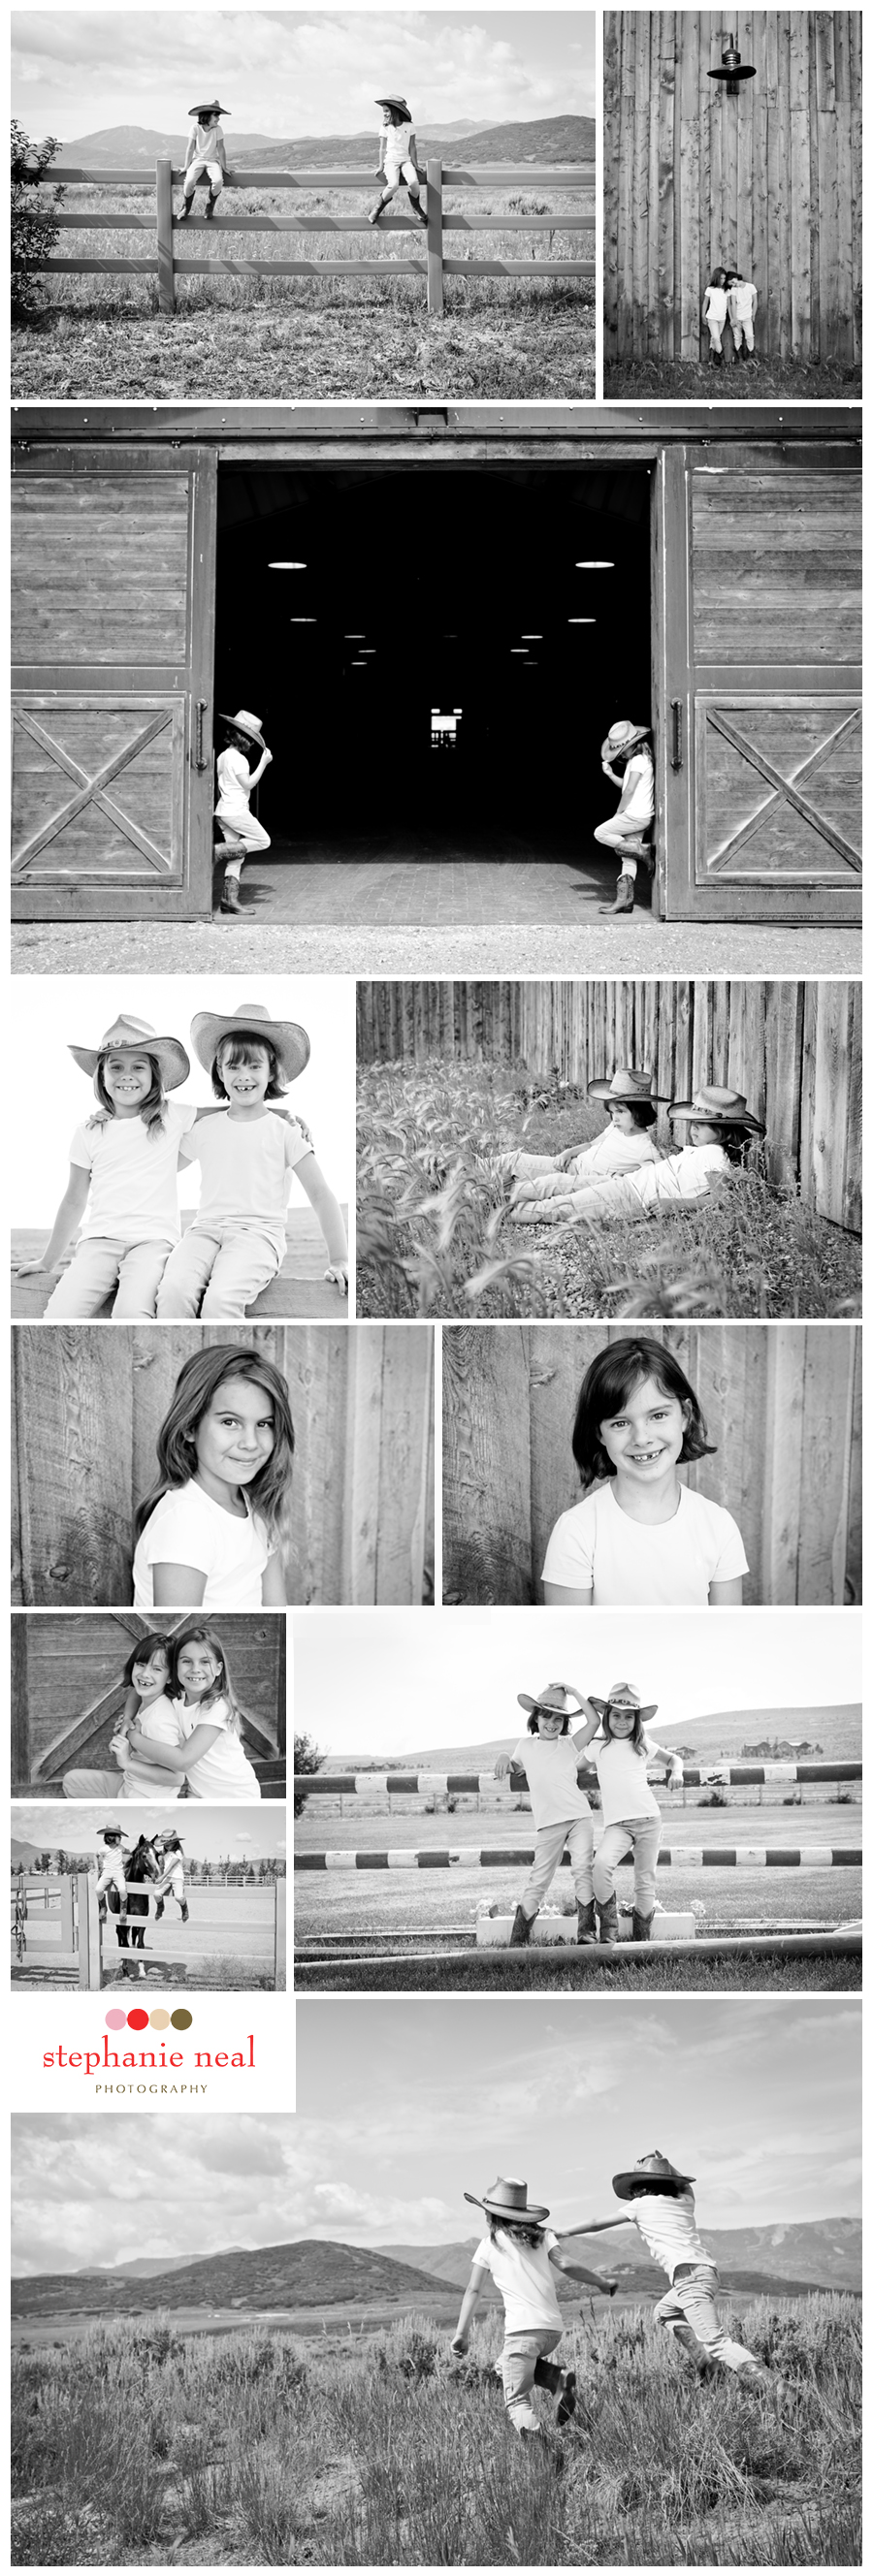 Stephanie Neal Photography, Park City Utah Family Portrait Studio Photographer